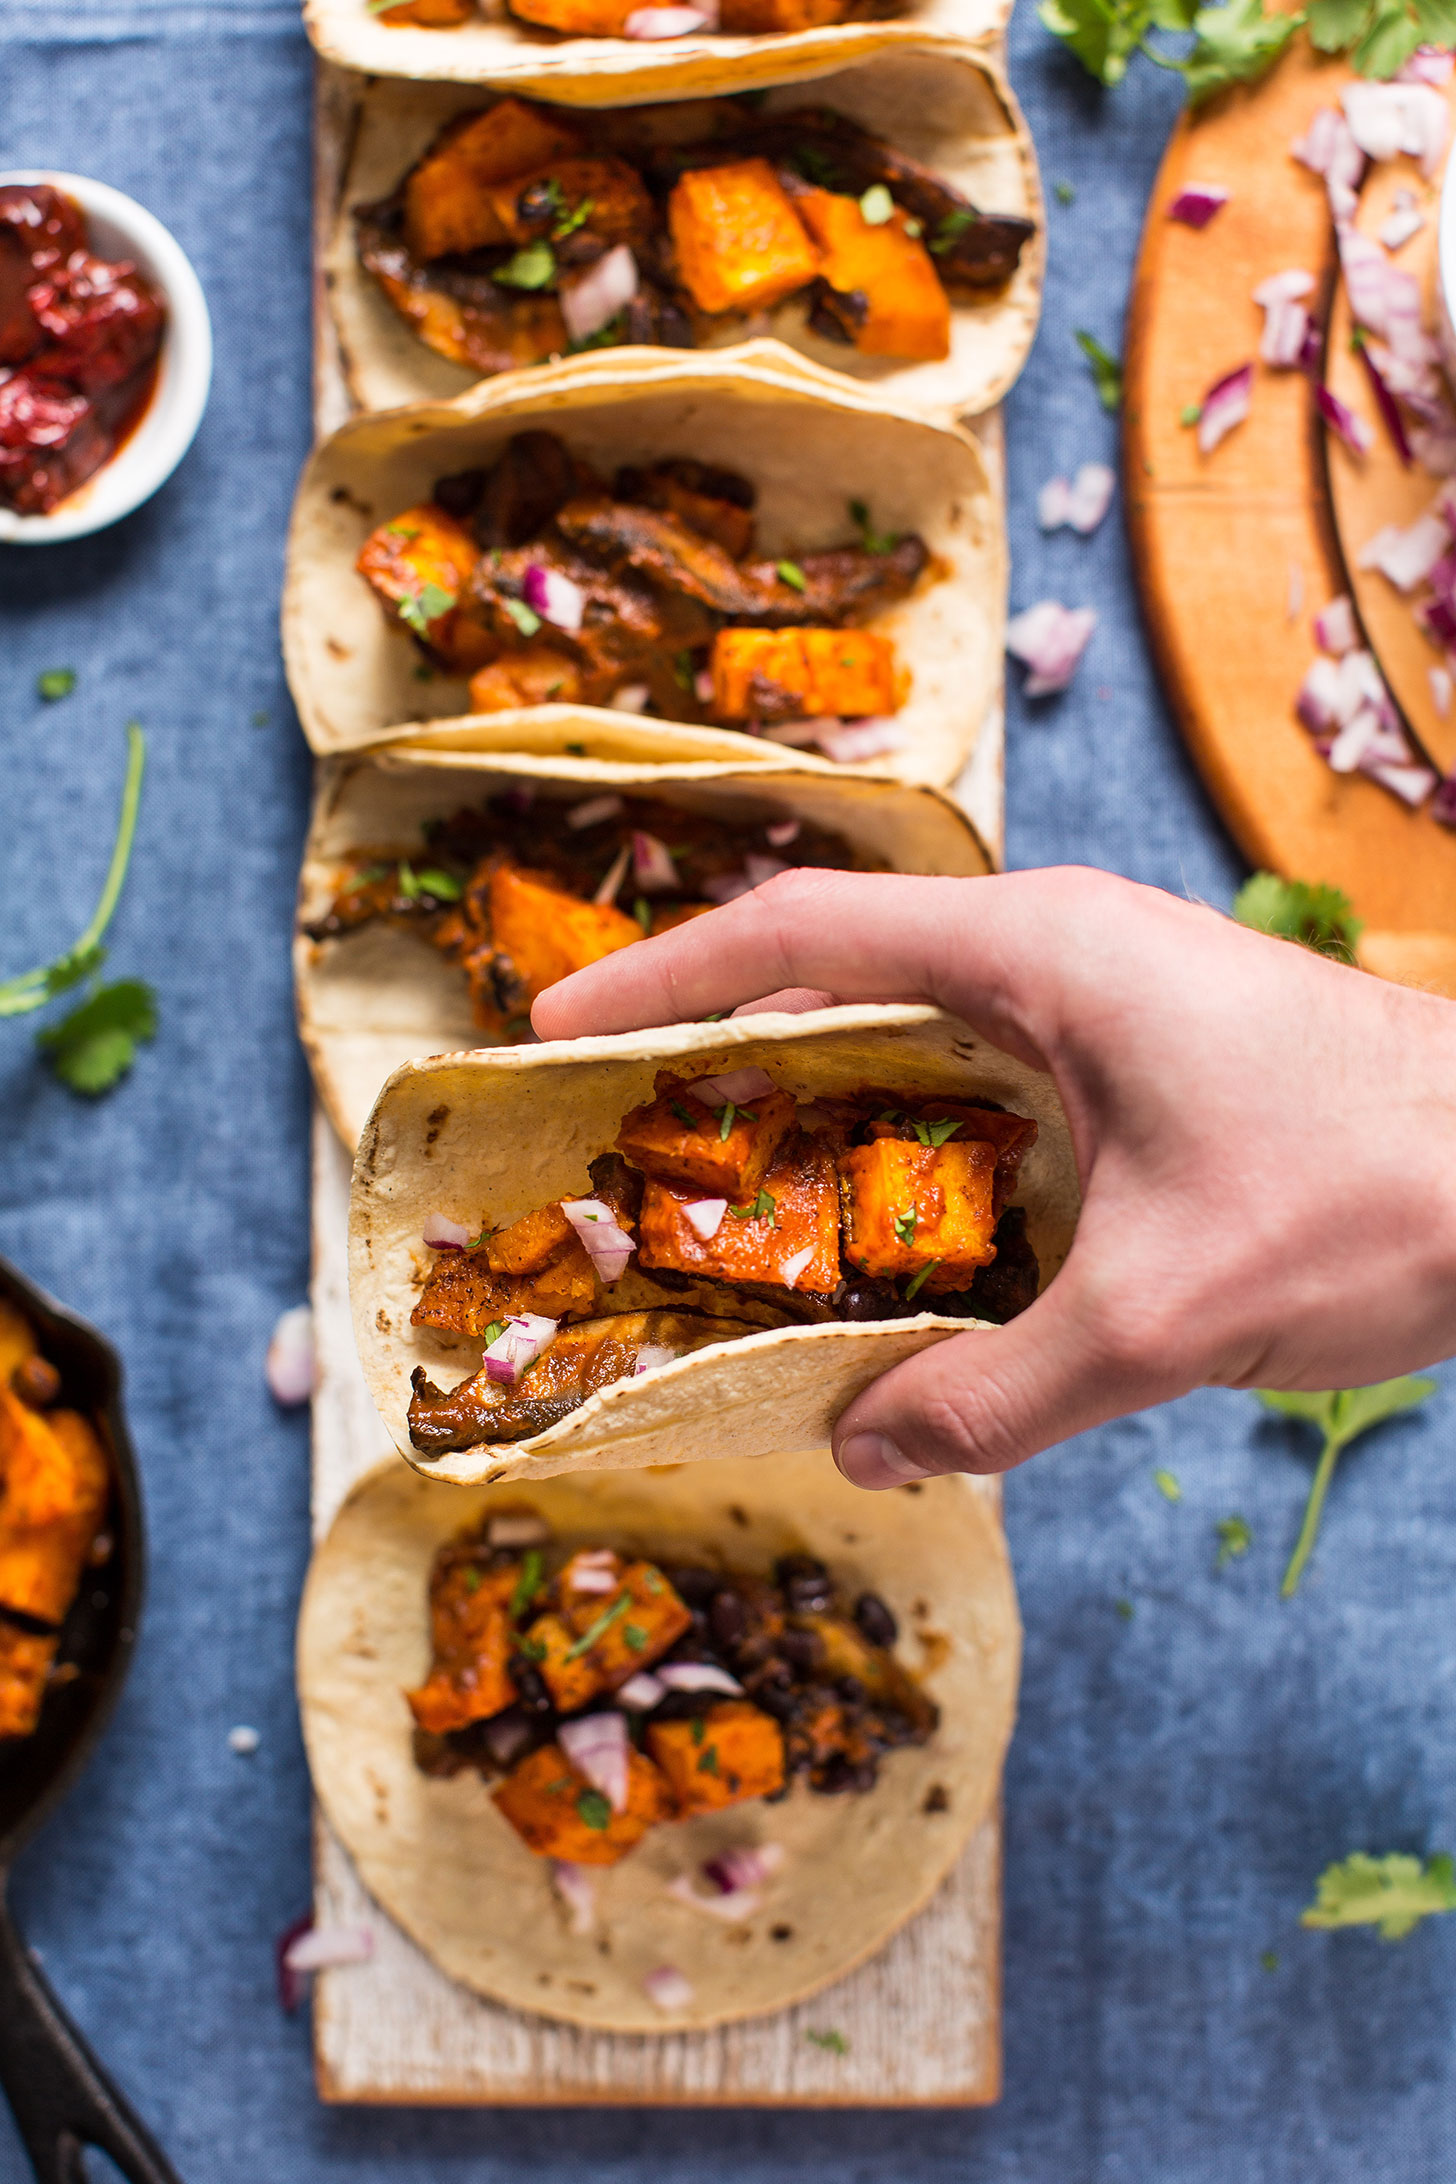 Holding up a Saucy Butternut Squash and Portobello Taco for a healthy gluten-free plant-based meal